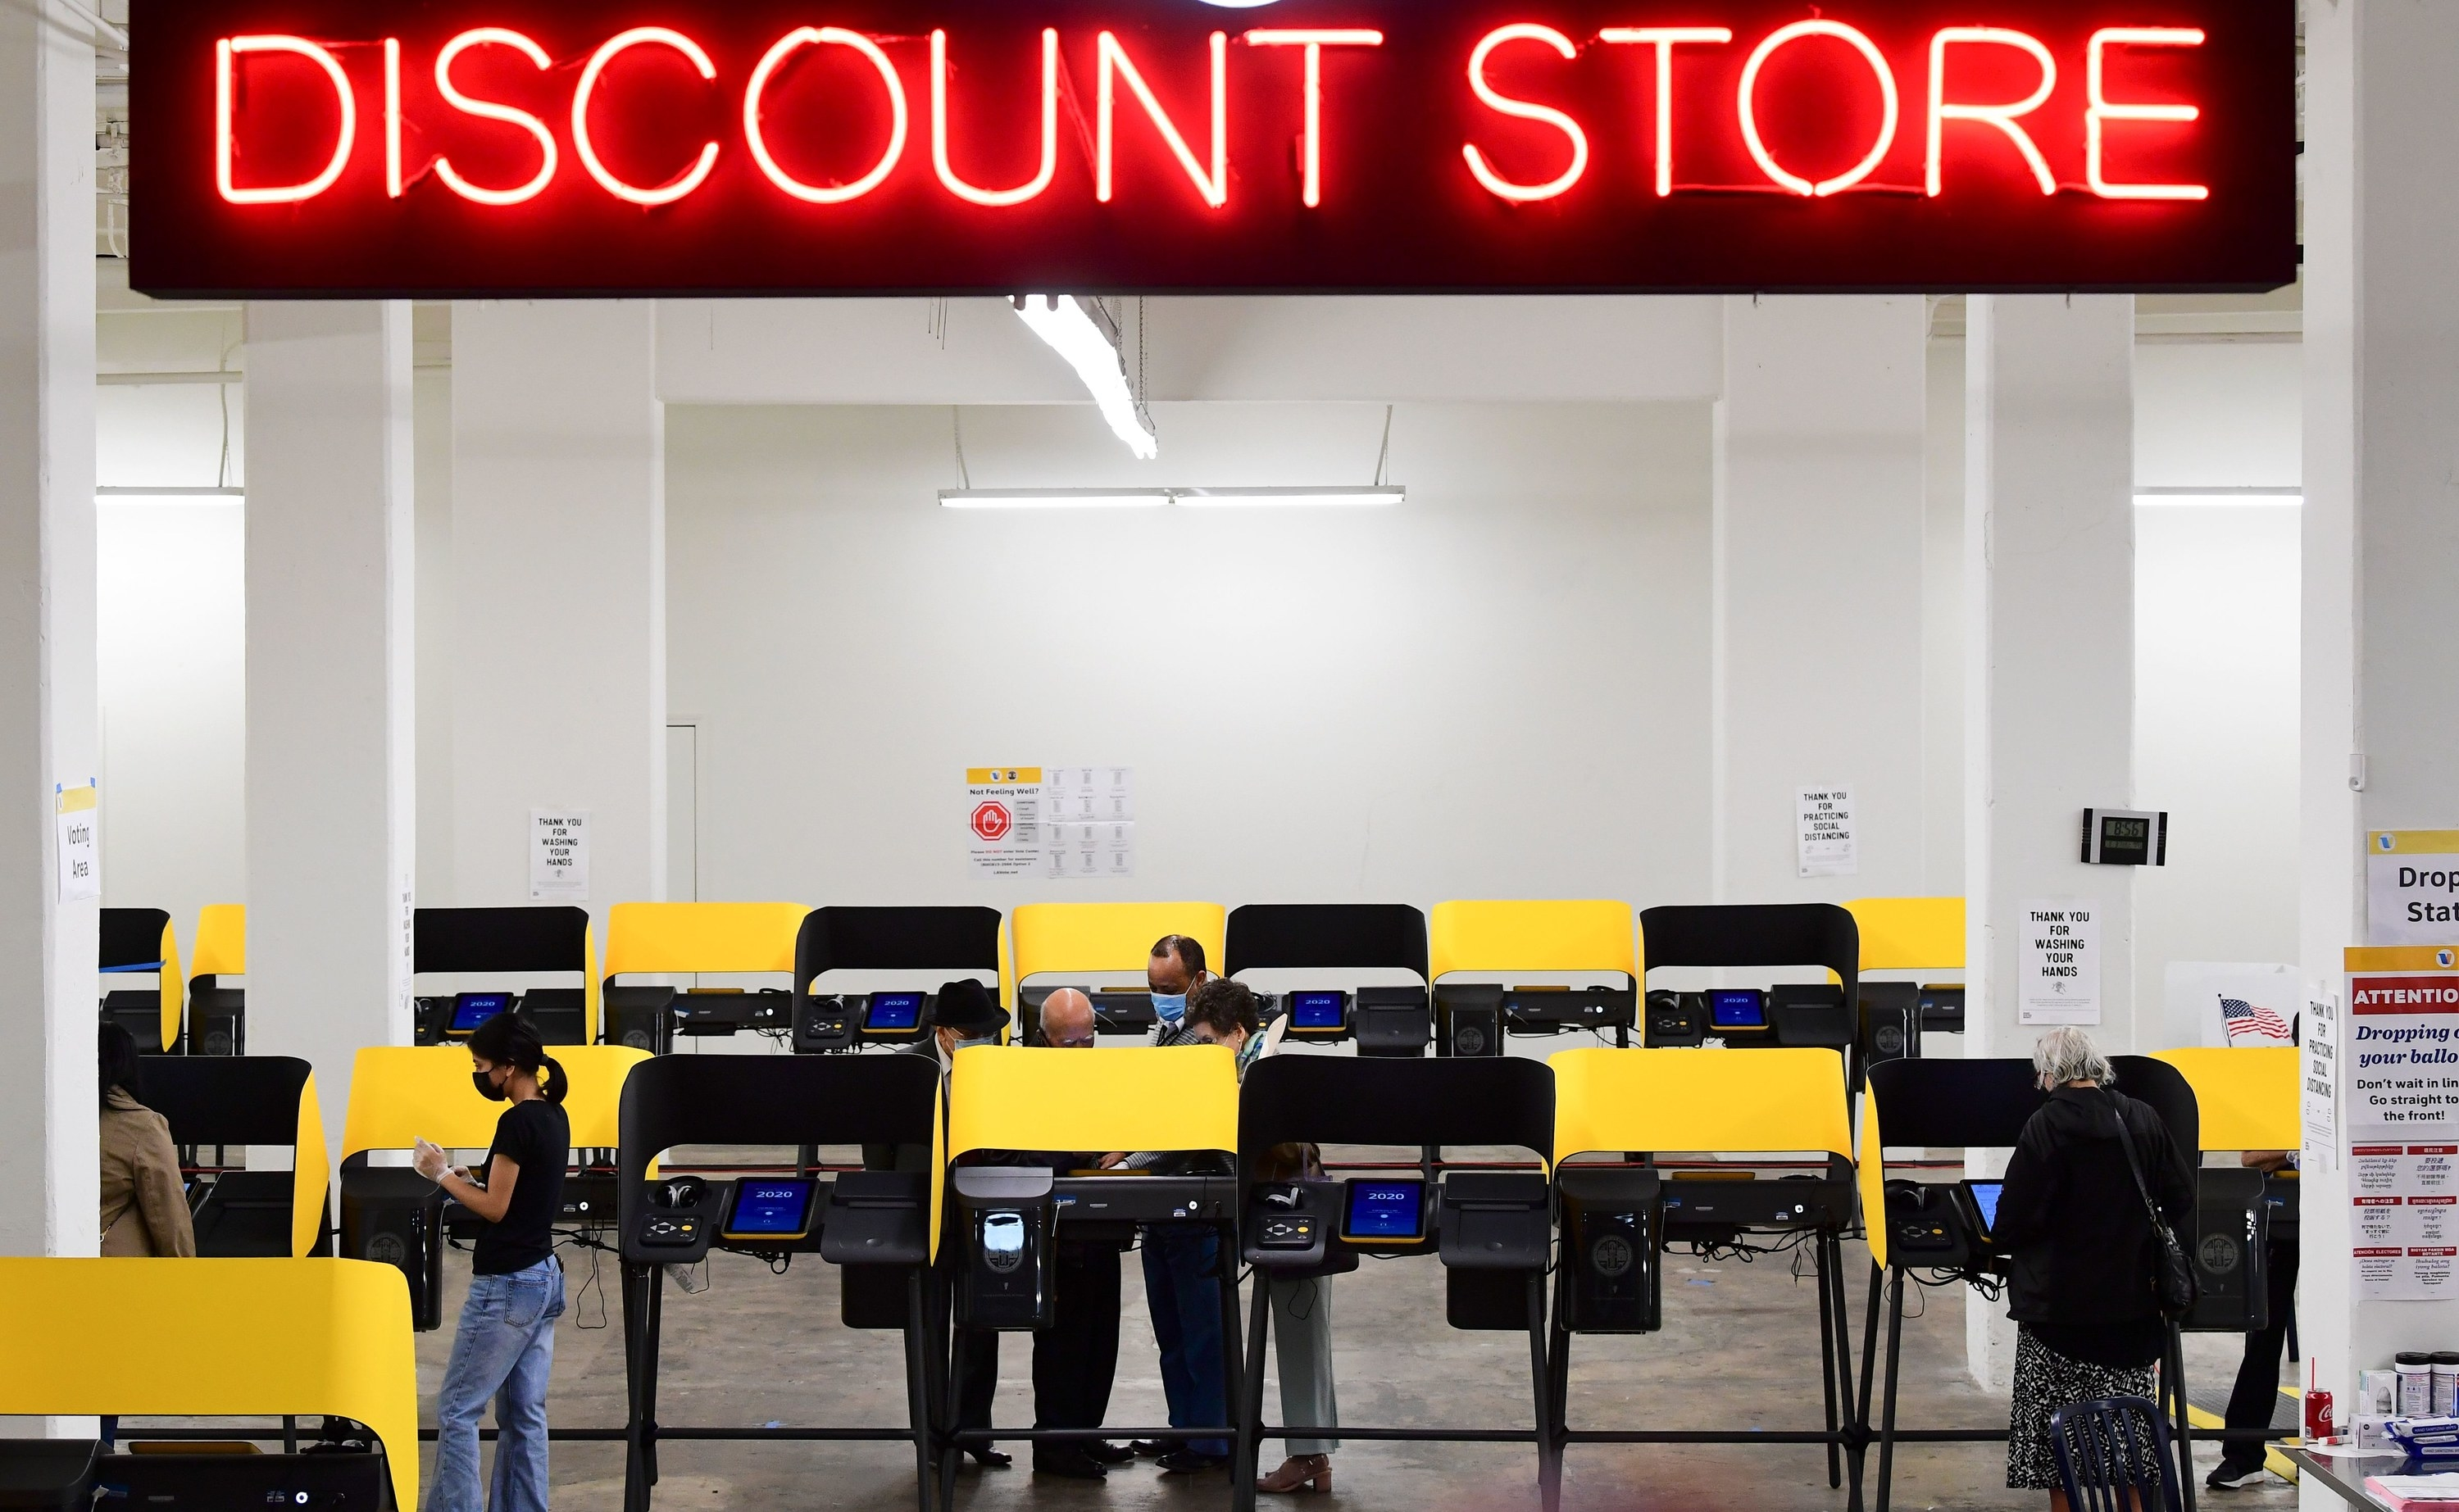 People voting underneath a giant discount sign.